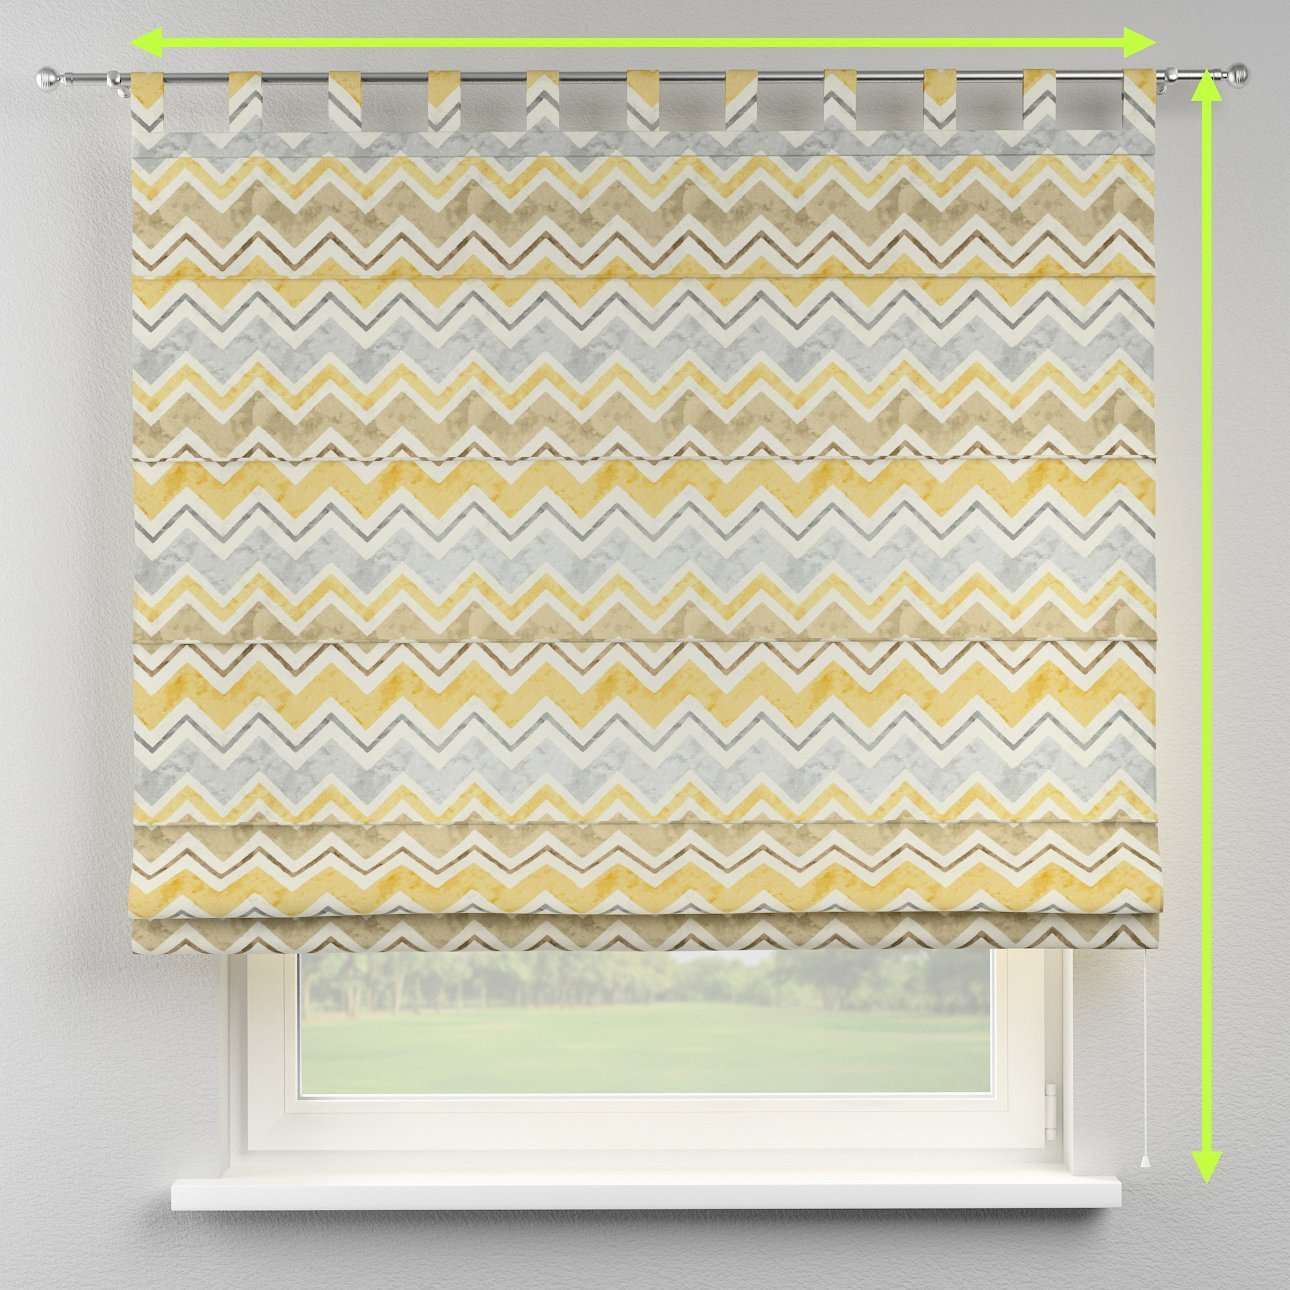 Verona tab top roman blind in collection Acapulco, fabric: 141-39